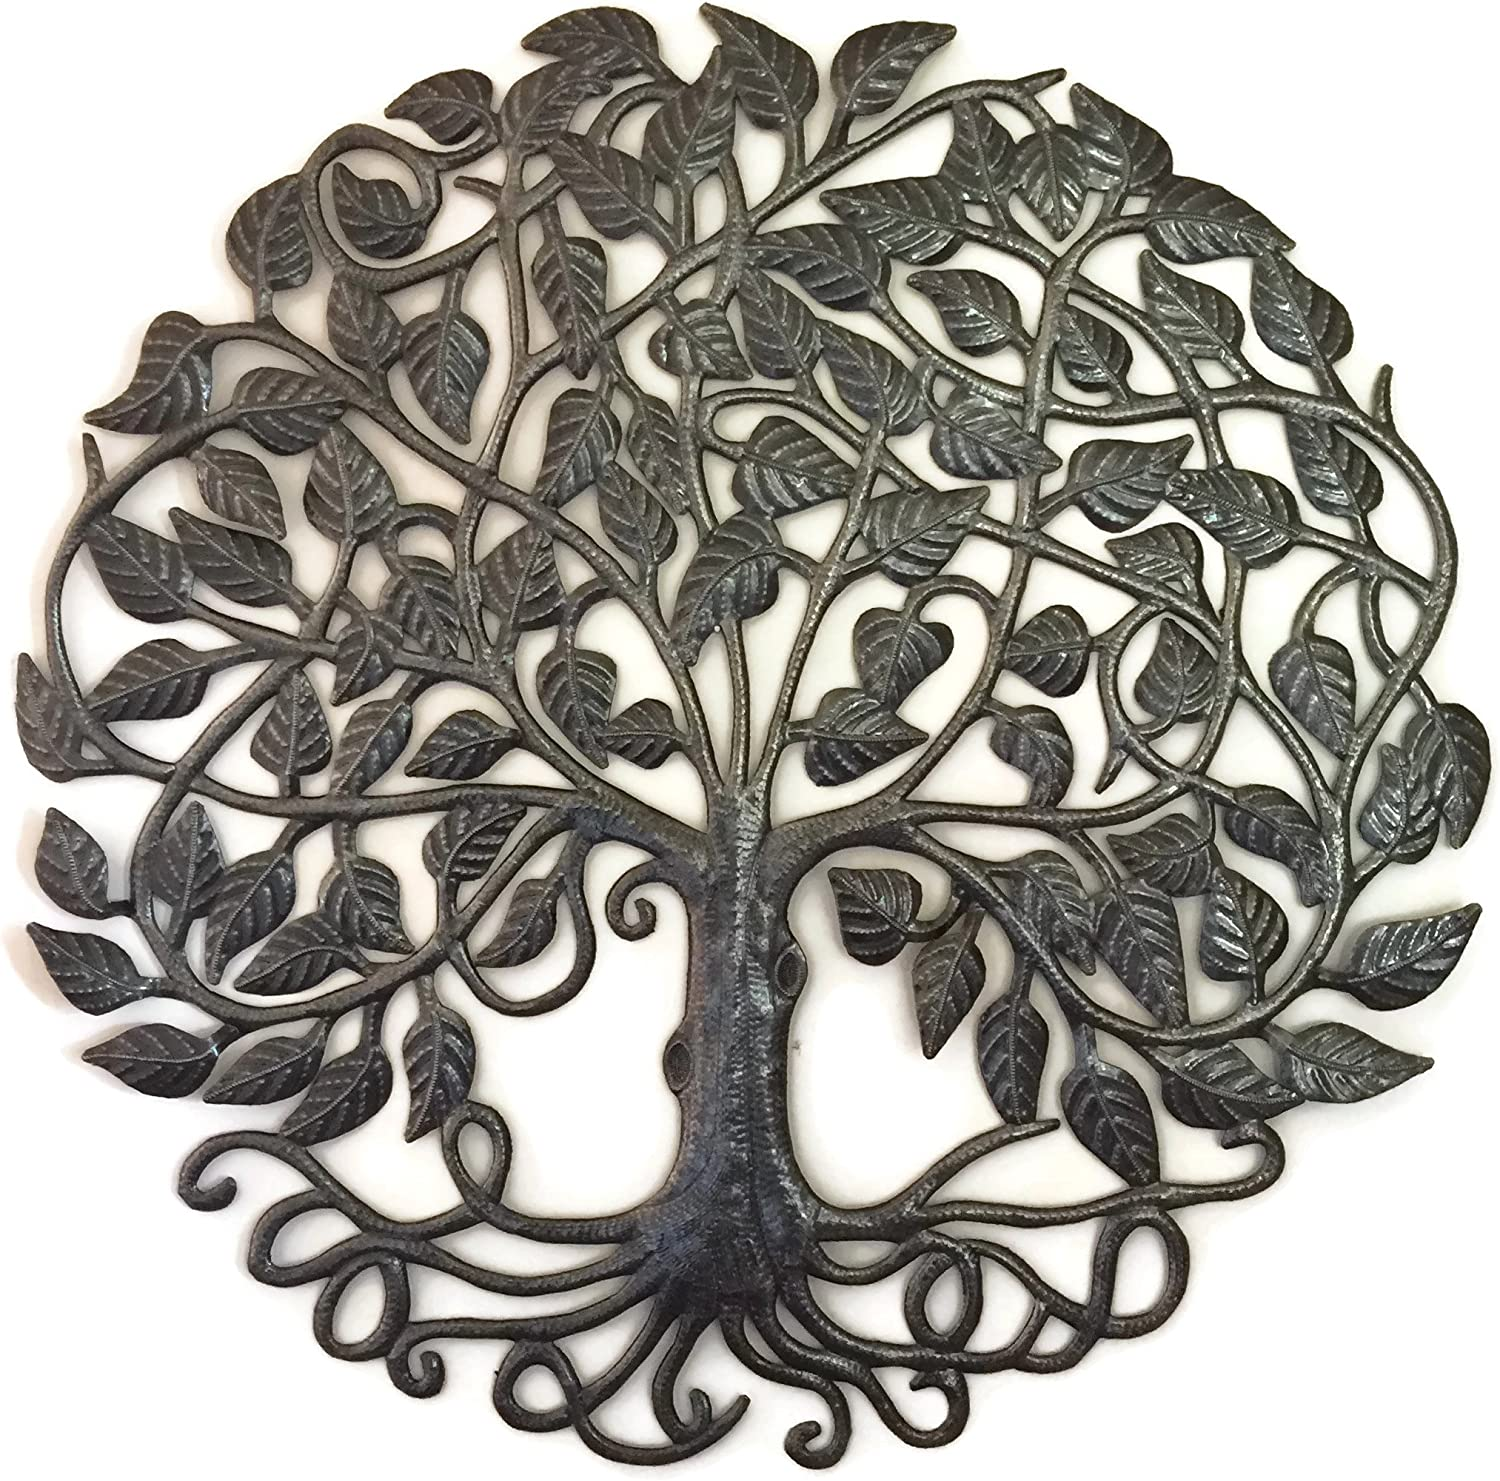 Large Metal Tree of Life with Roots, Family Room Statement Art, Handmade in Haiti by Julio Balan, Metal Wall Home Decor, 33 in. Round